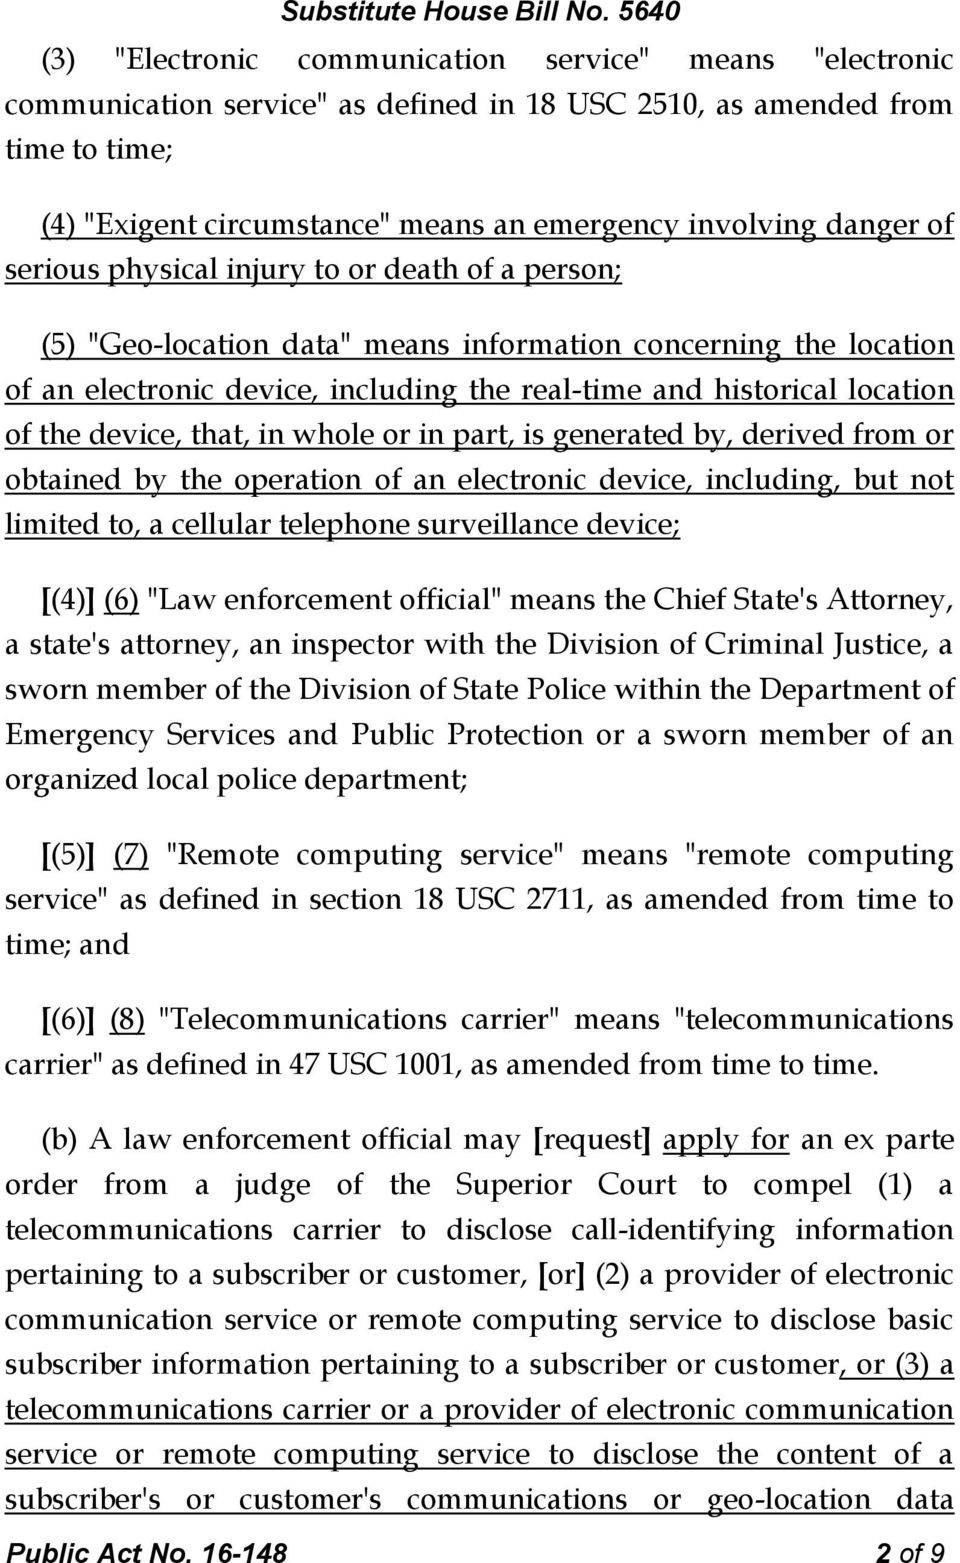 device, that, in whole or in part, is generated by, derived from or obtained by the operation of an electronic device, including, but not limited to, a cellular telephone surveillance device; [(4)]